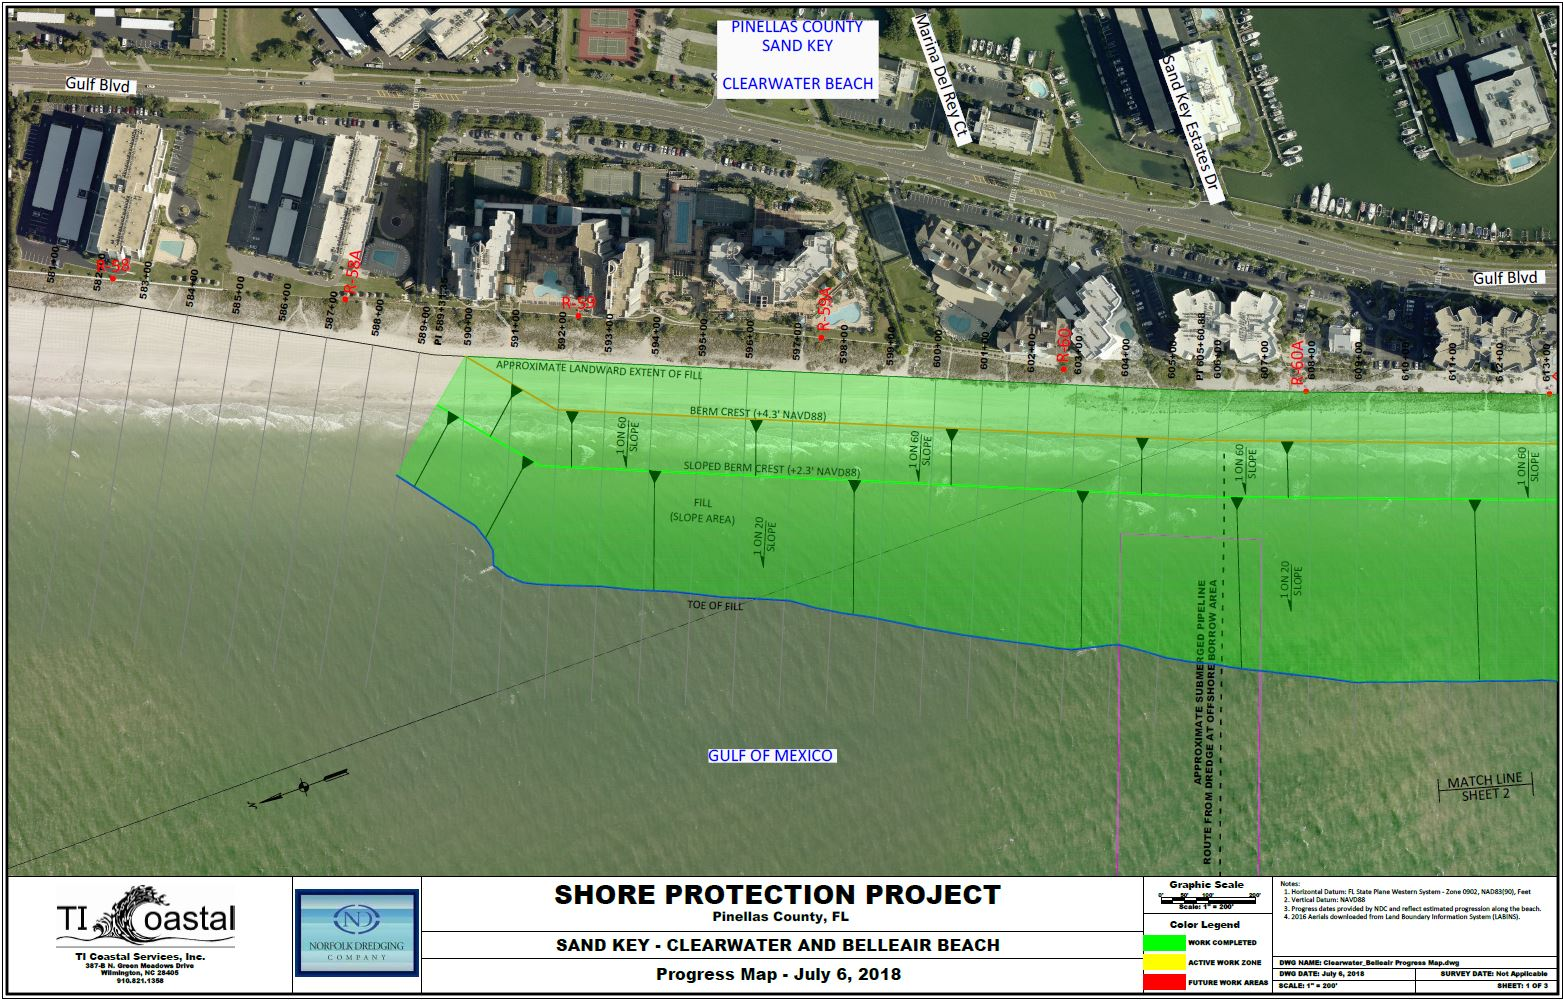 Pinellas County Shore Protection Progress Map July 6 2018 Section 1